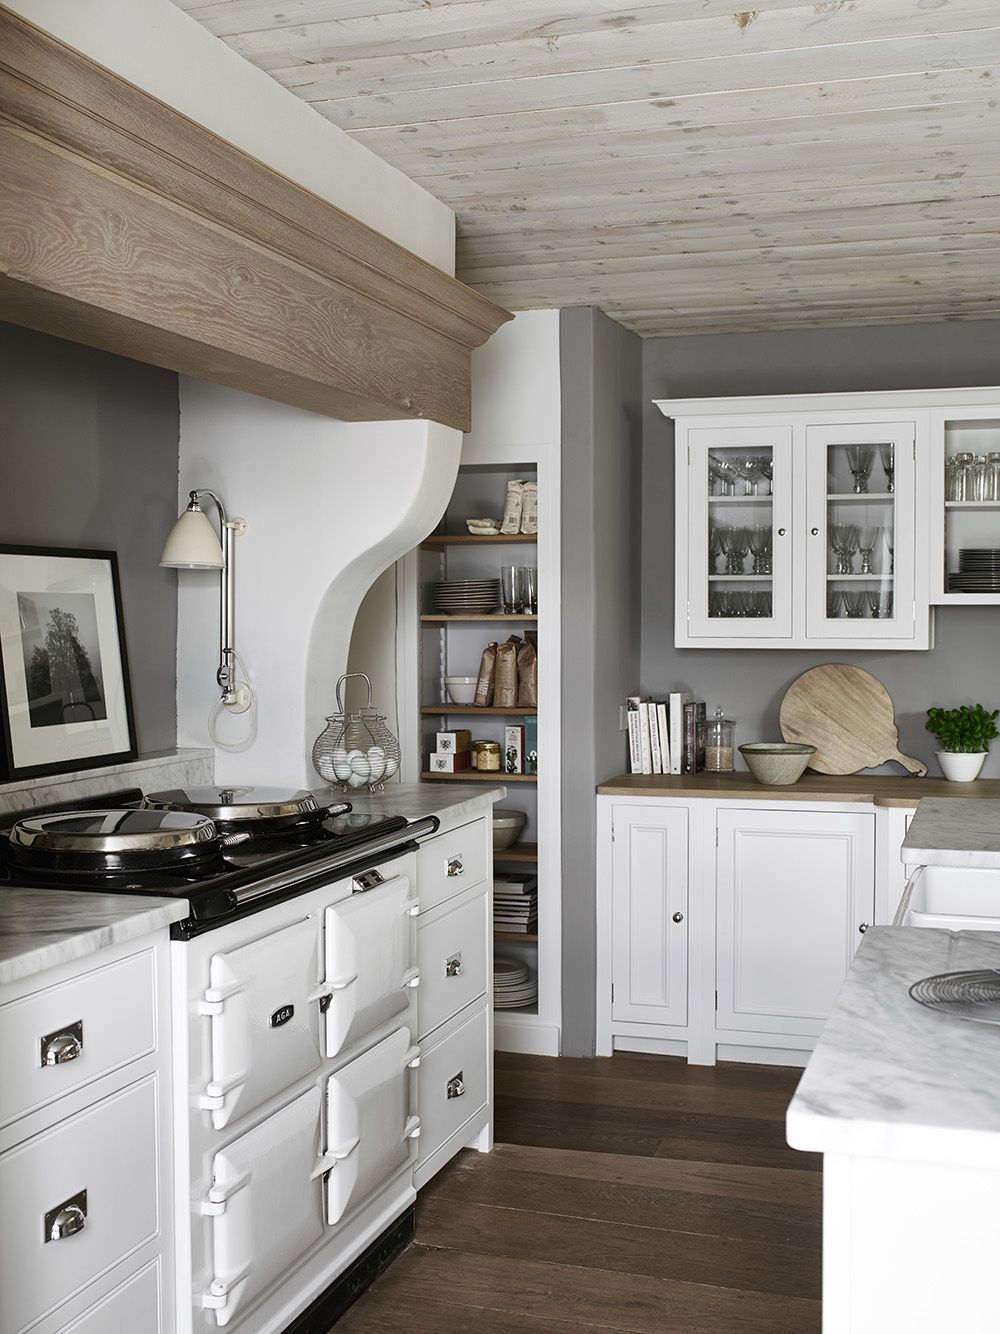 A classic country kitchen. #ChichesterRange #NeptuneKitchen #Kitchen ...